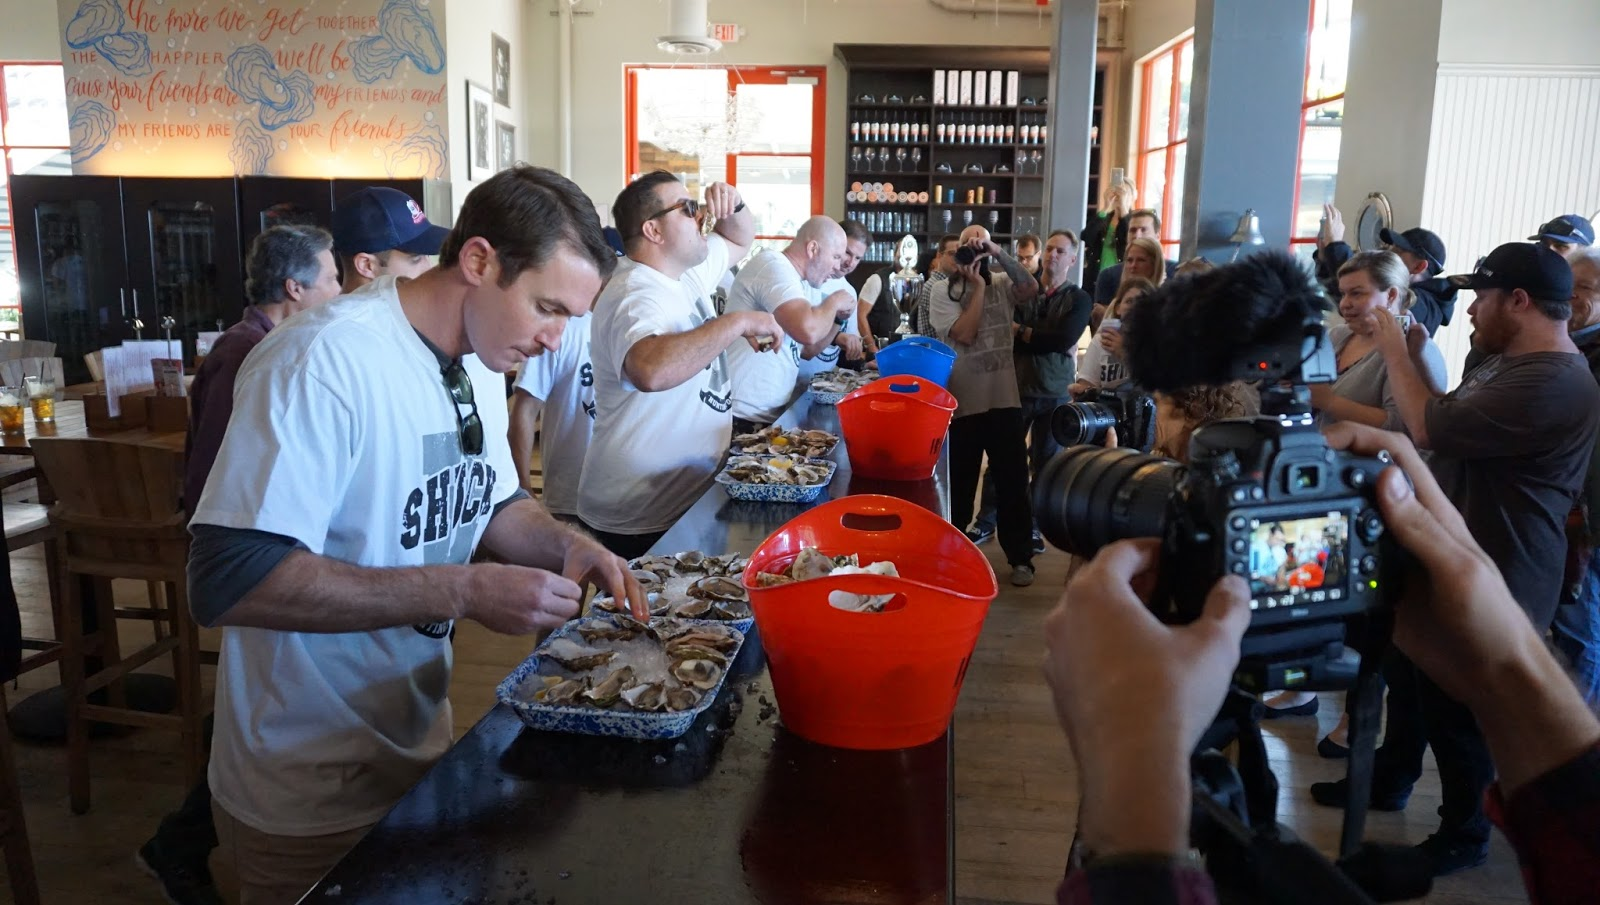 Ways and Means Oyster House Hosted A Successful Oyster Shucking Contest For Charity